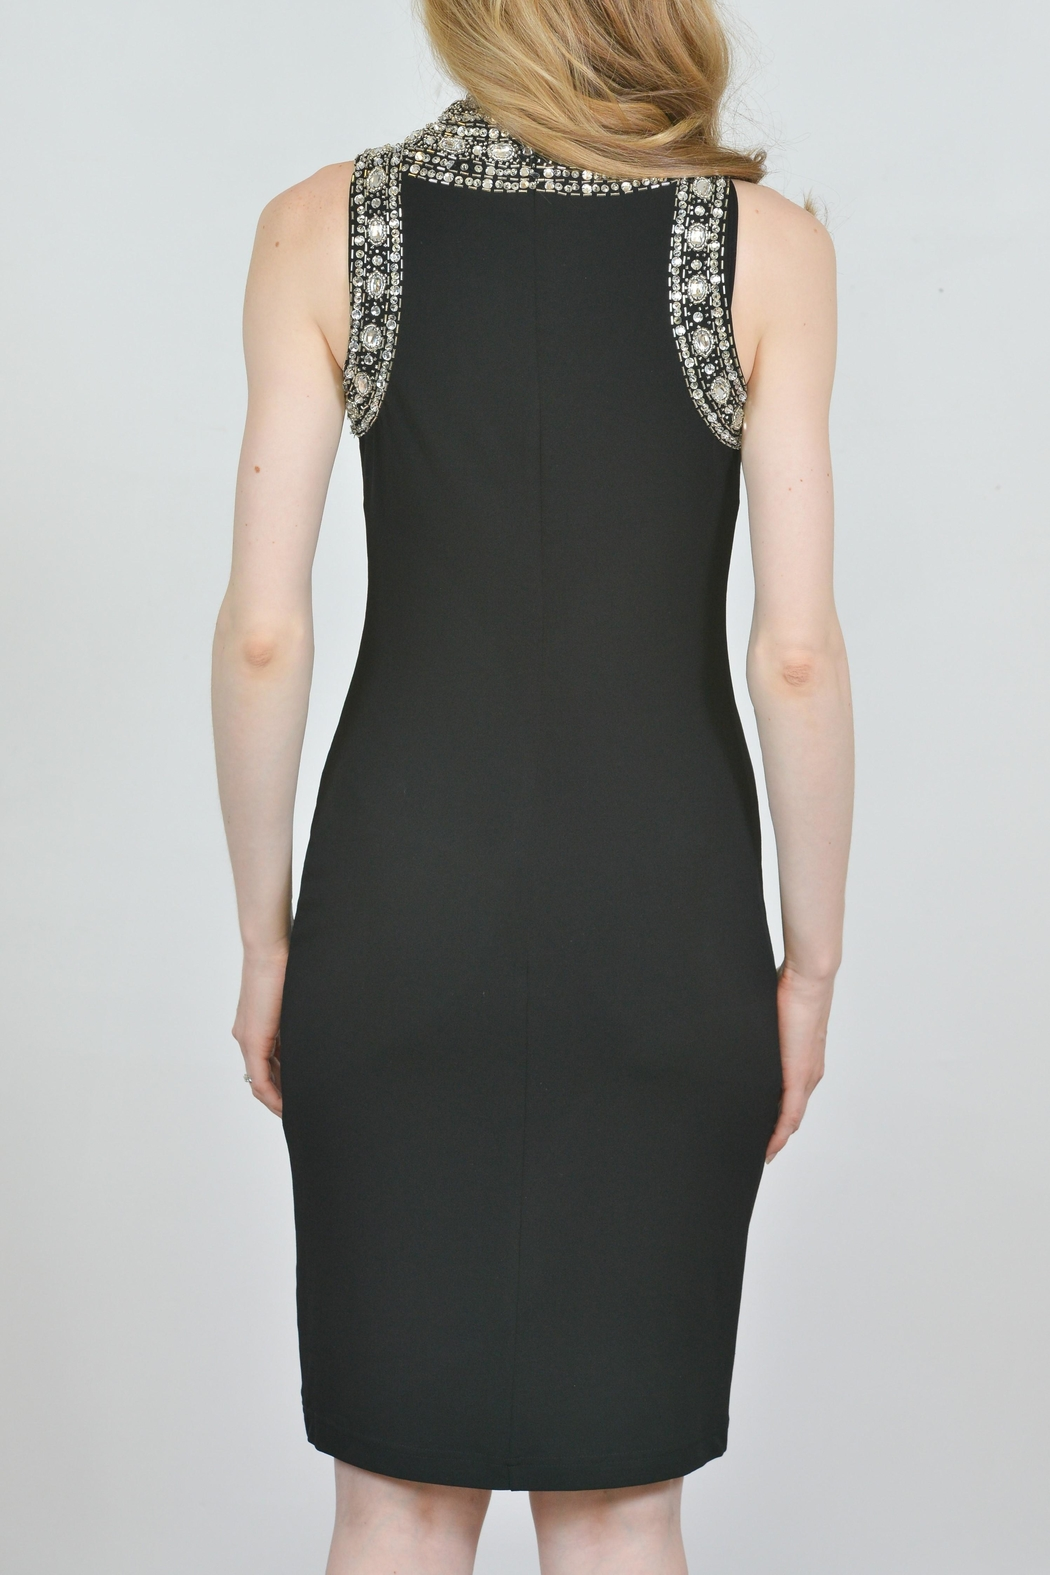 Joseph Ribkoff Crystal Accented Dress - Front Full Image